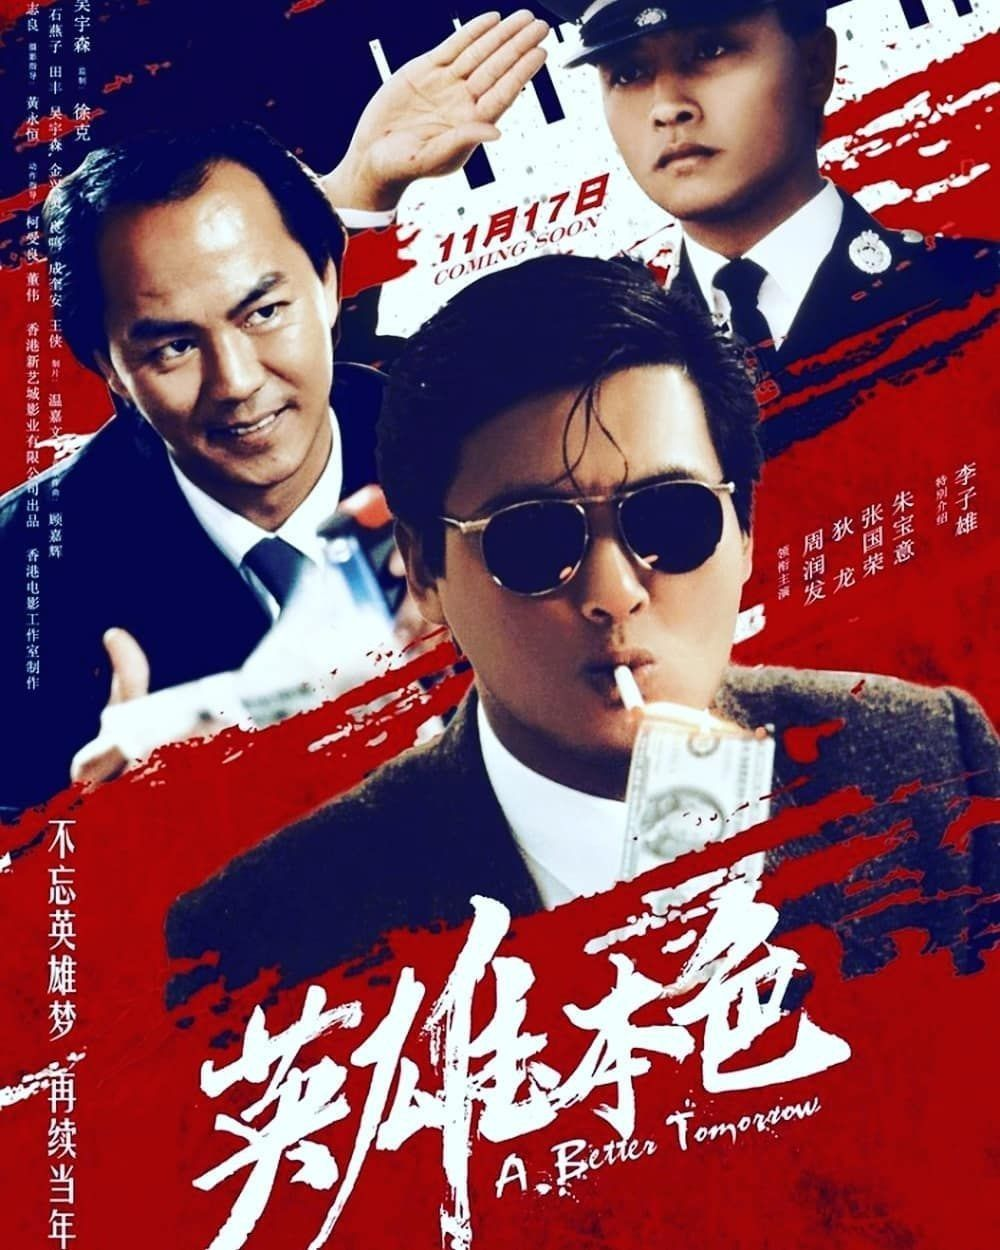 Pin on CHOW YUN FAT, THE ULTIMATE ACTOR